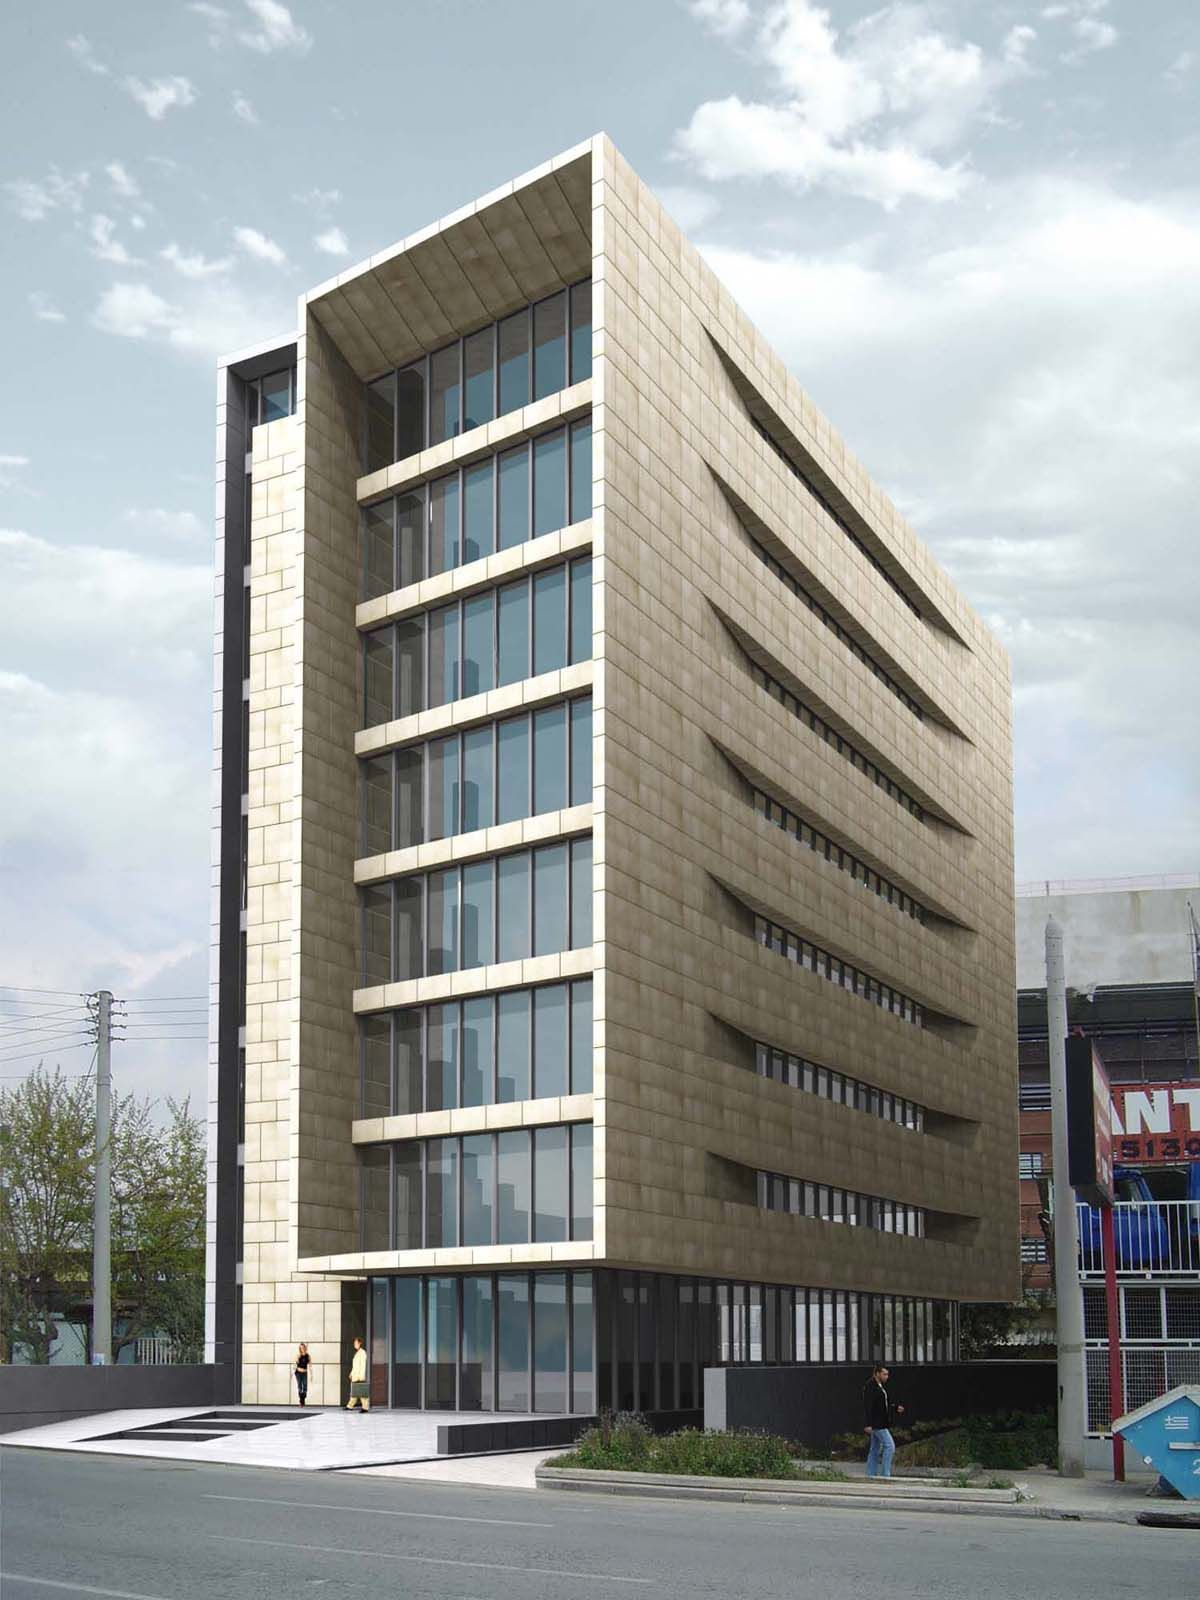 Office building architecture google search for Modern office building design concepts exterior